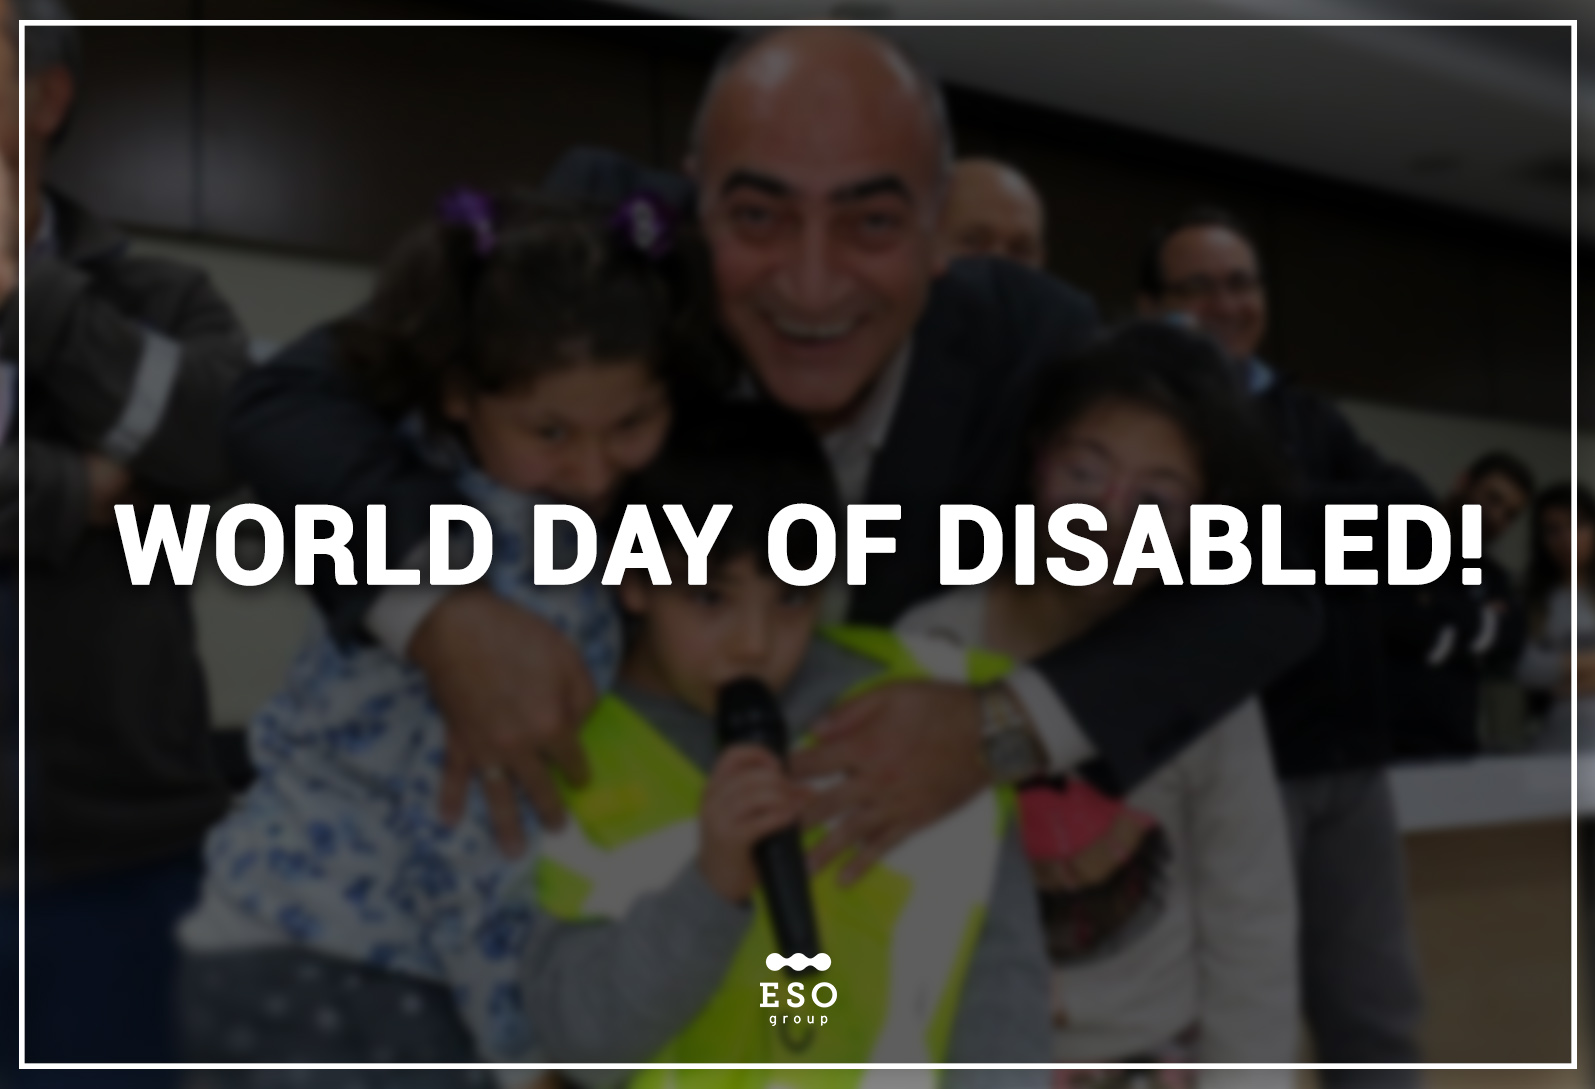 World Day of Disabled